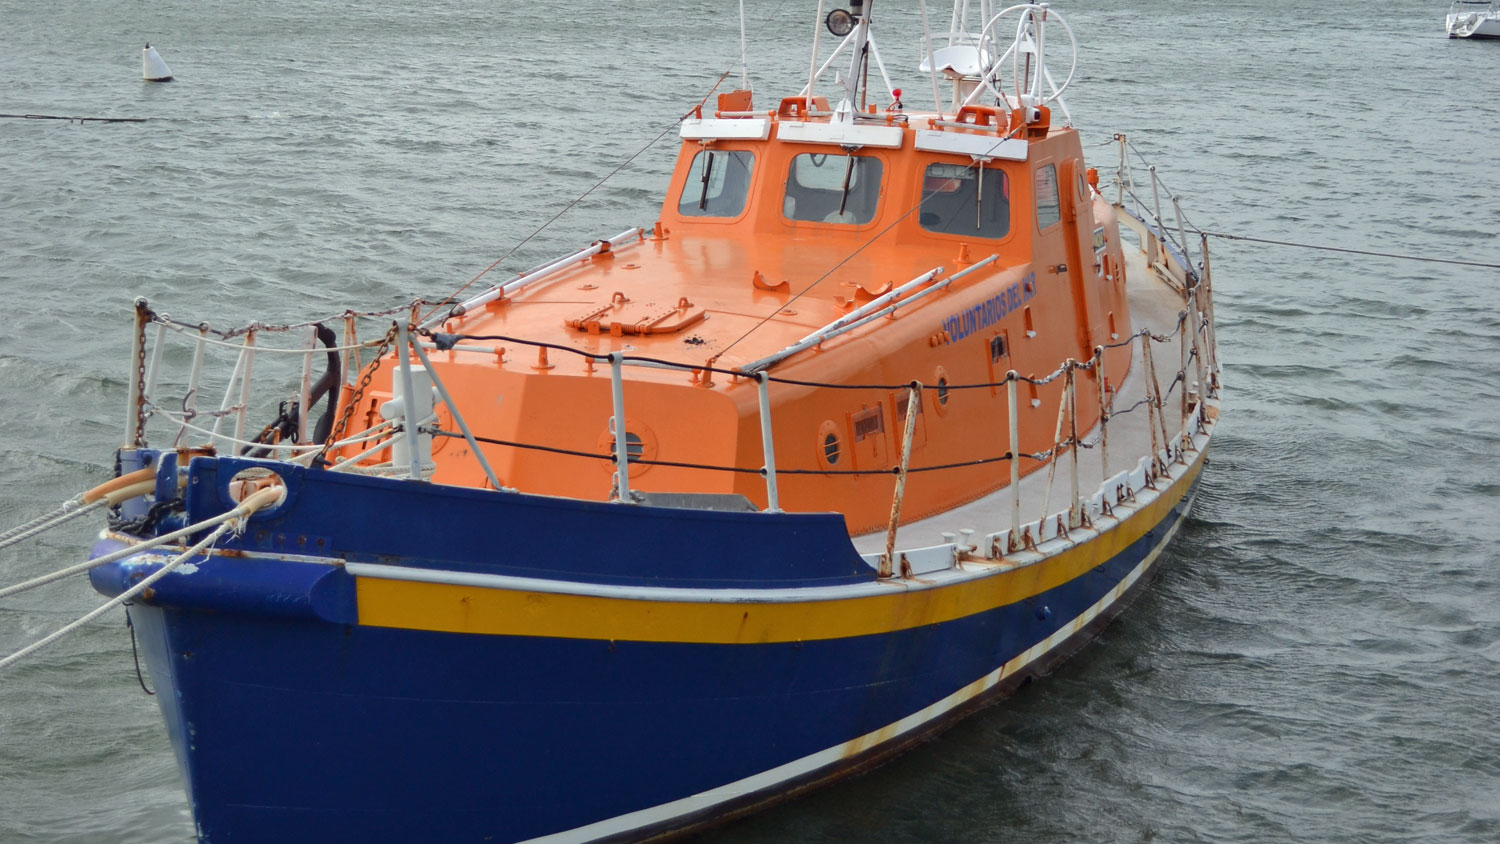 An all-weather lifeboat used by ADES rescue volunteers in Uruguay